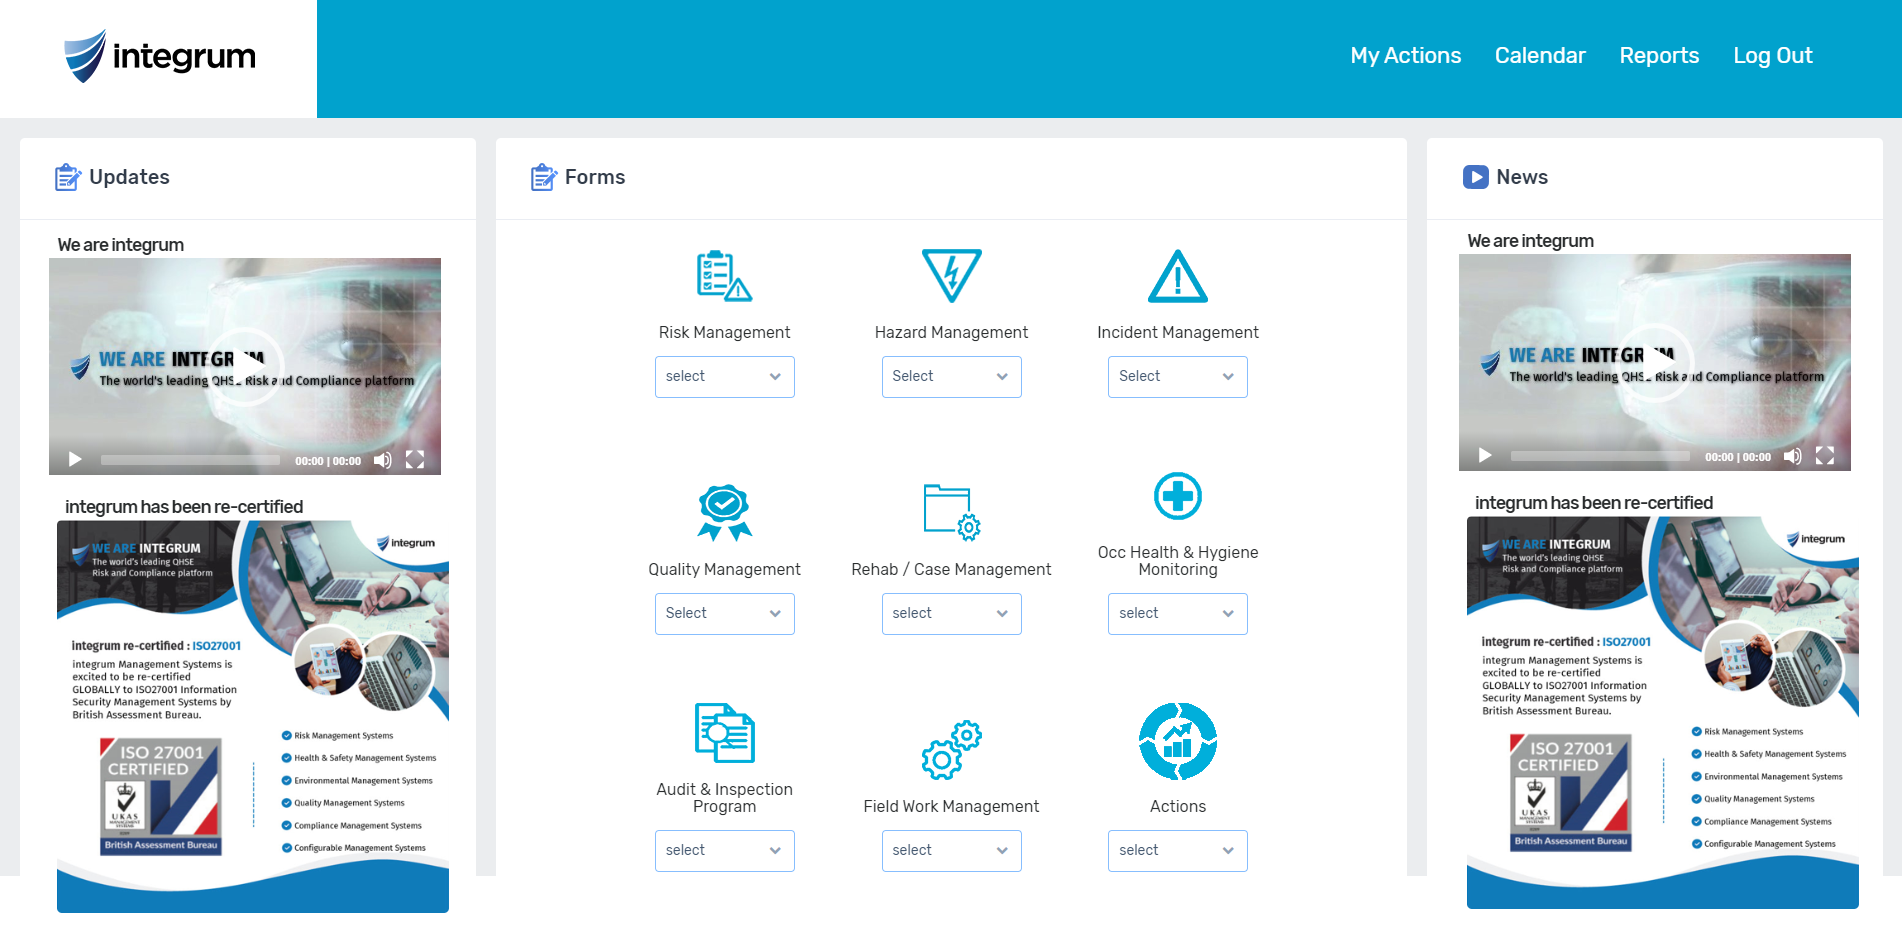 Configurable portals allow for secure online access for reporting incidents and much more